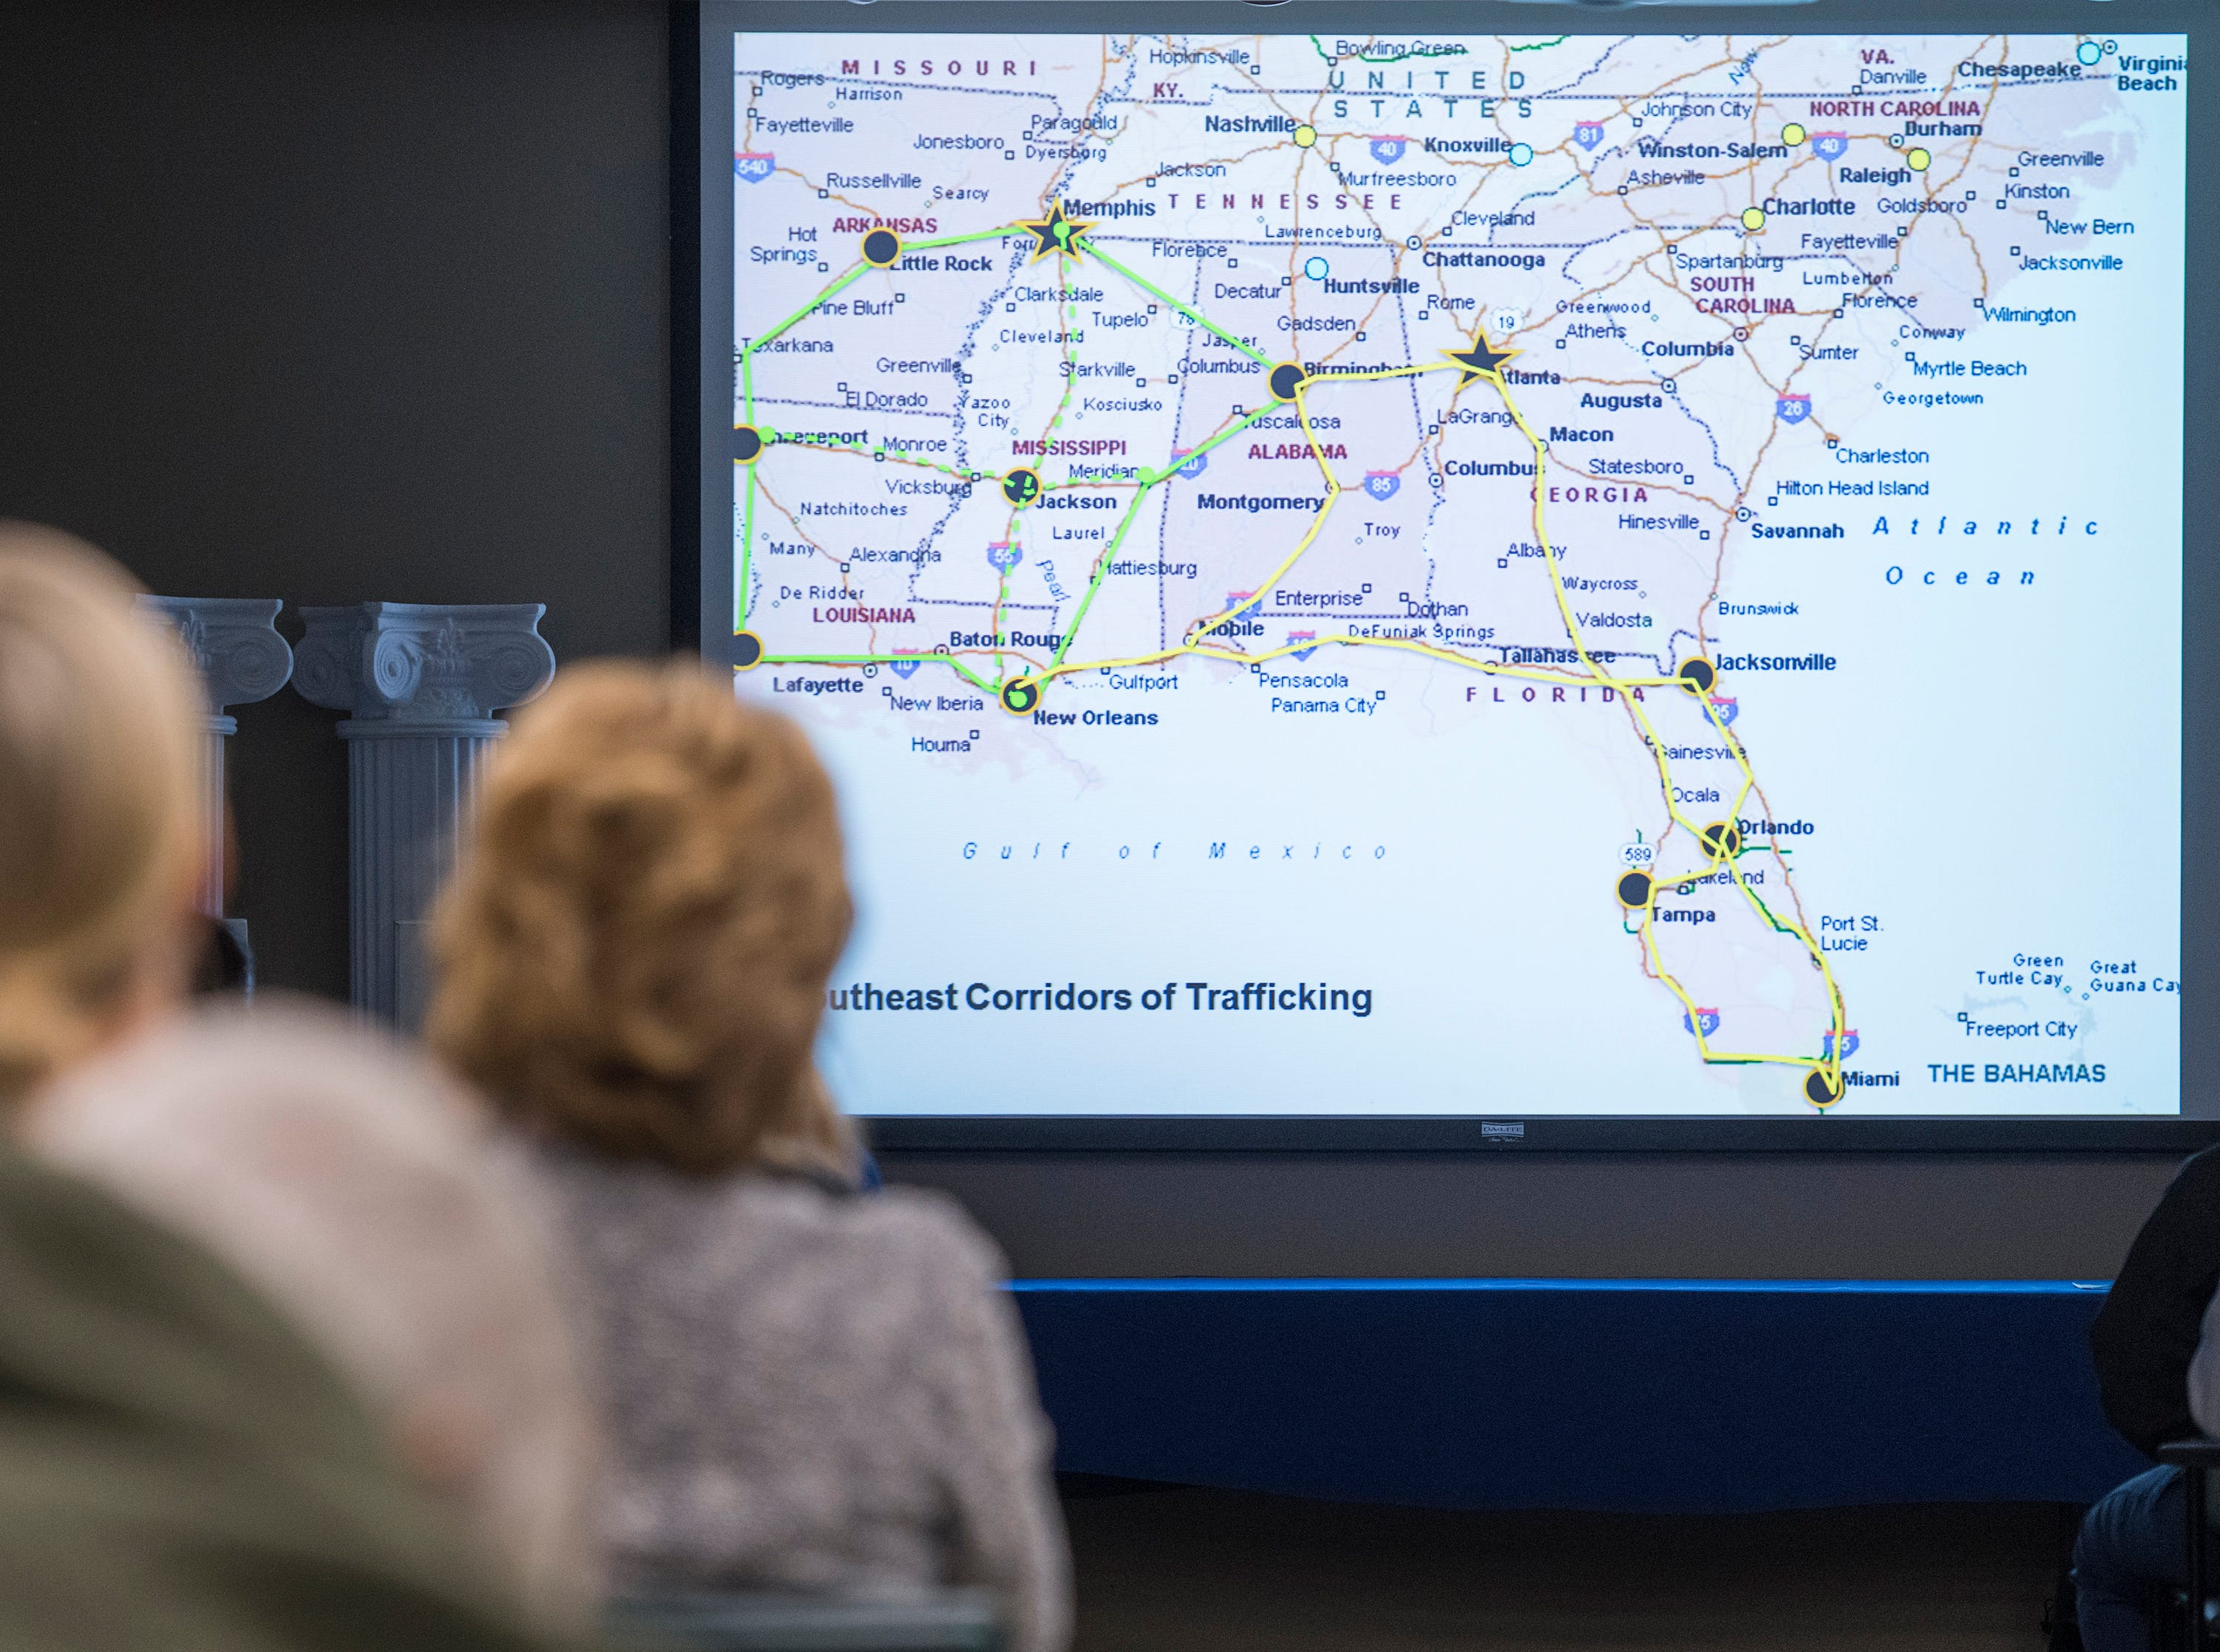 Brad Dennis, National Search Director for the KlaasKIDS Foundation's Search Center for Missing & Trafficked Children, teaches health care workers how to identify potential victims of human trafficking and commercial sex exploitation during a seminar at Baptist Hospital in Pensacola on Thursday, November 29, 2018.